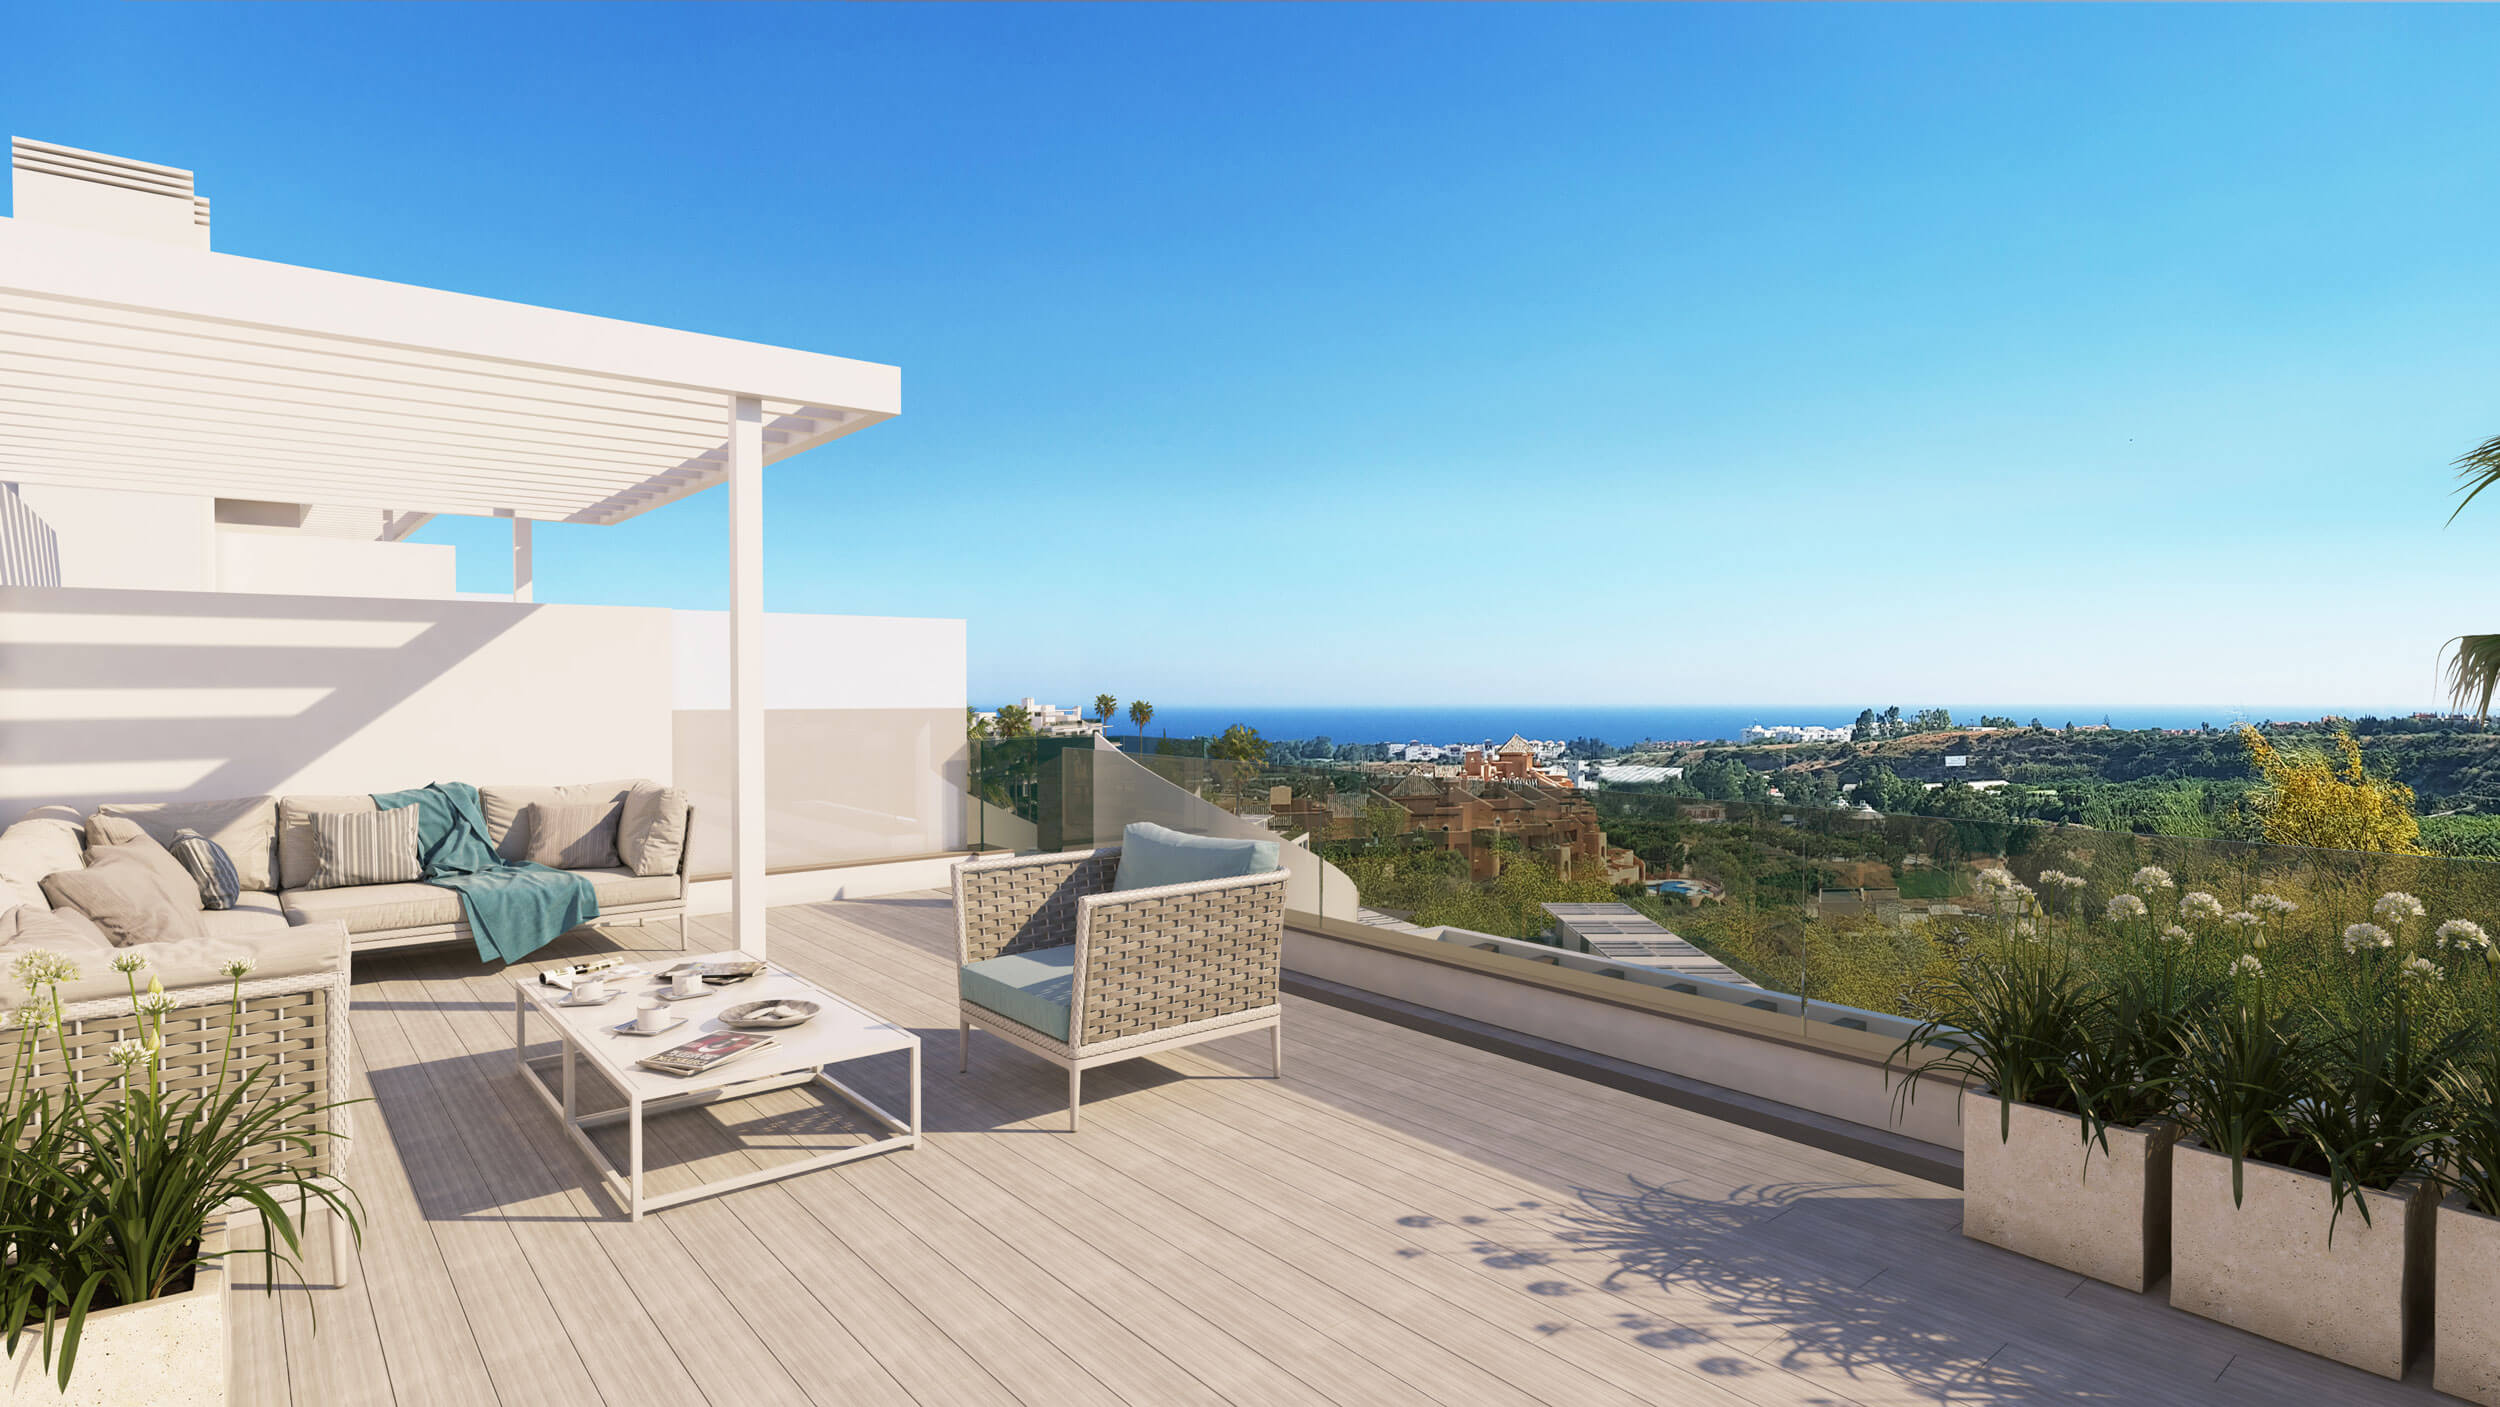 oceana views invest spain bromley cancelada estepona new golden mile marbella zeezicht appartementen penthouses zeezicht golf wandelafstand te koop solarium